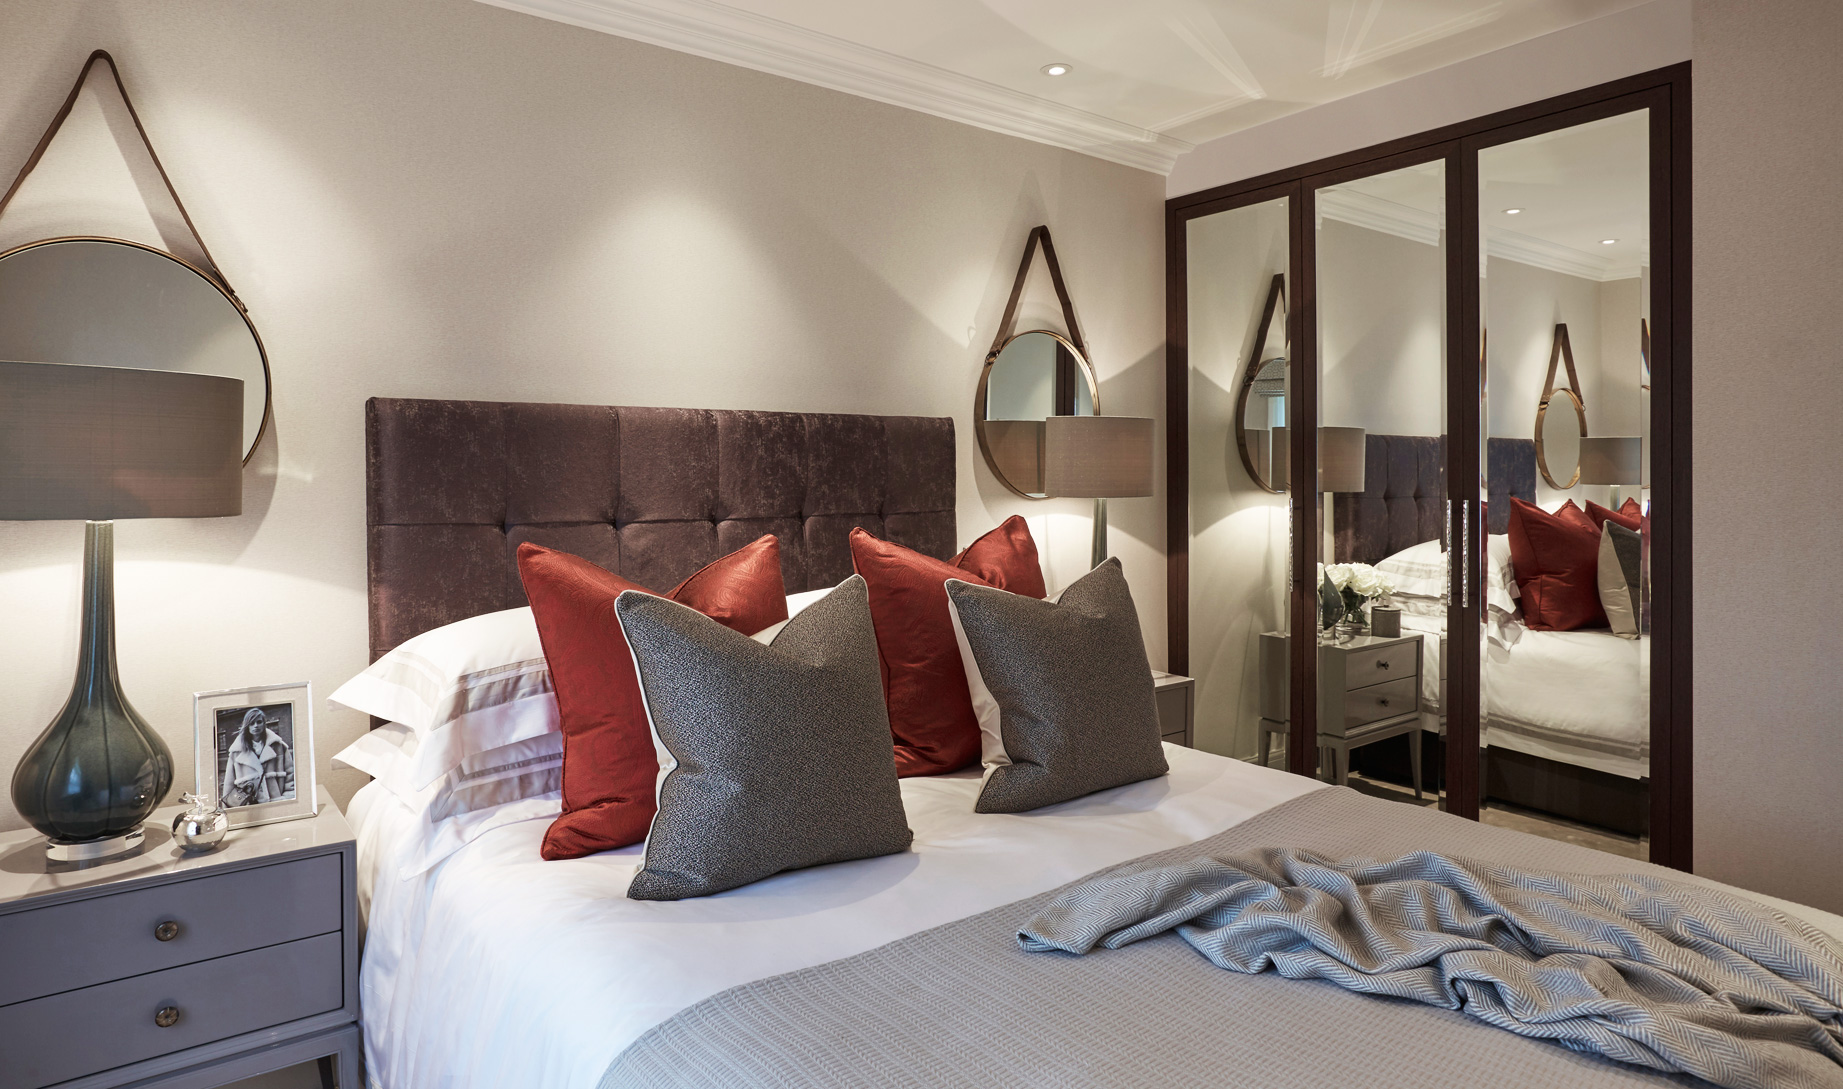 Guest bedroom at Wilton Street. Laura Hammett Design commissions local craftspeople to make the furn